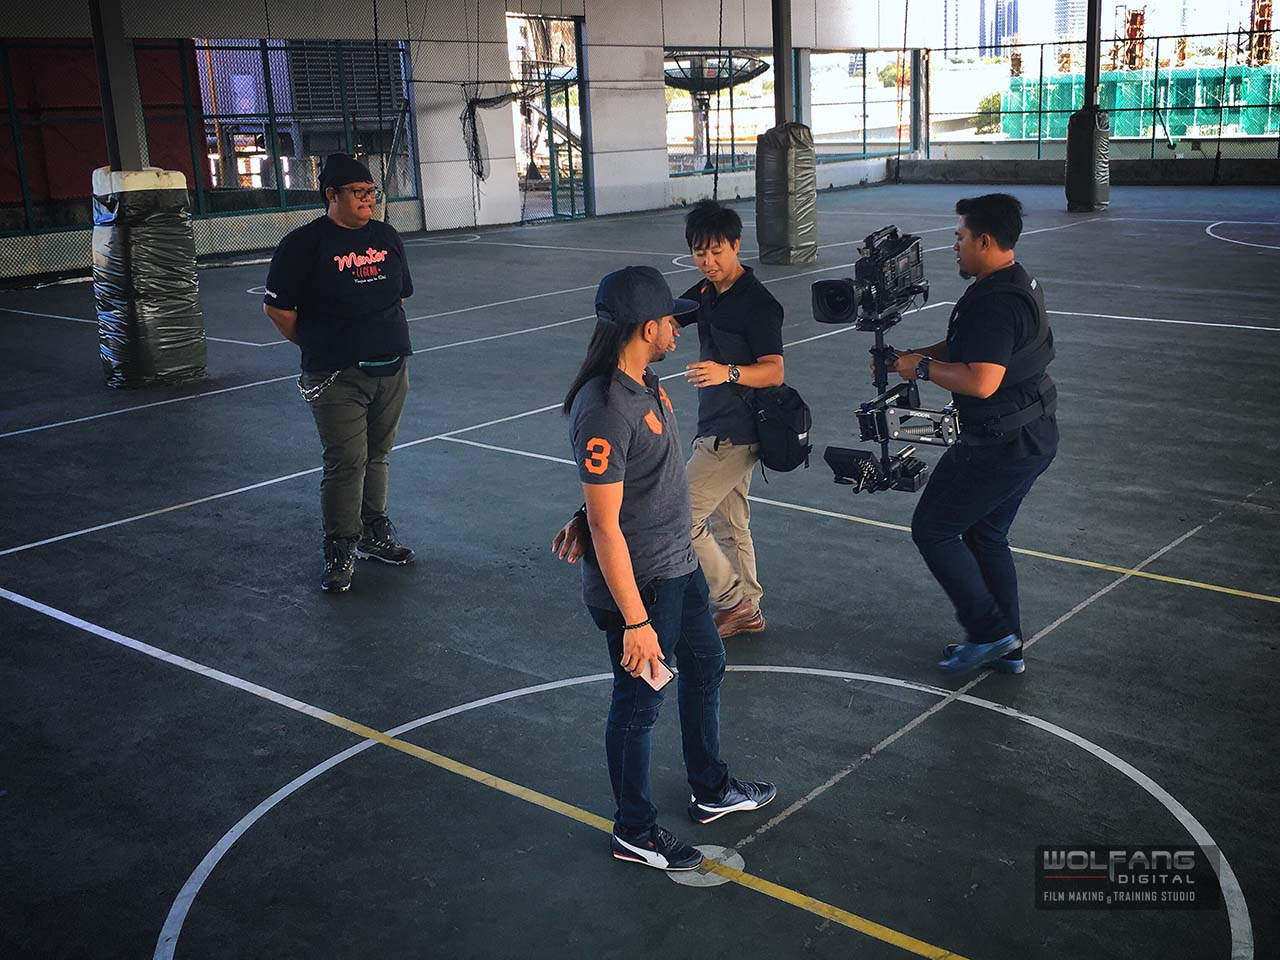 Hands on training and as your trainer personally helps you improve your Steadicam skills